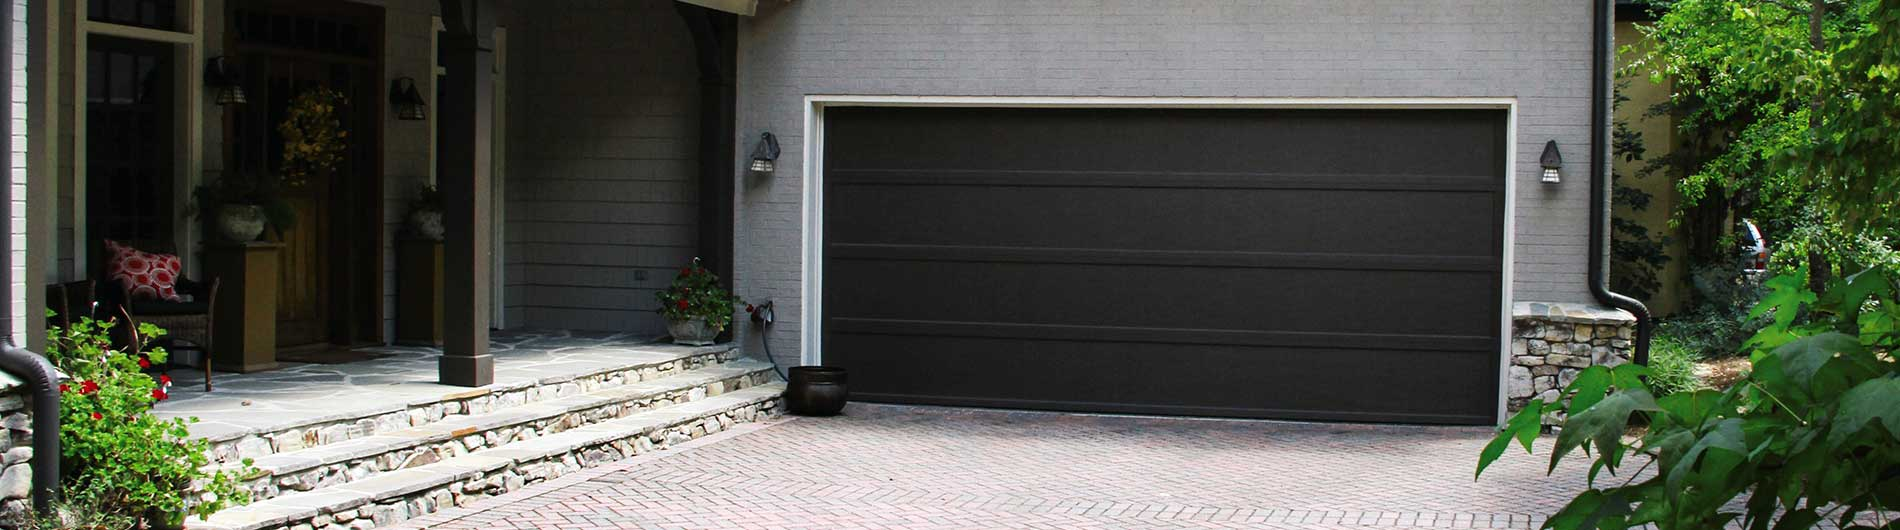 Carriage house steel garage doors 9405 Wayne dalton garage doors